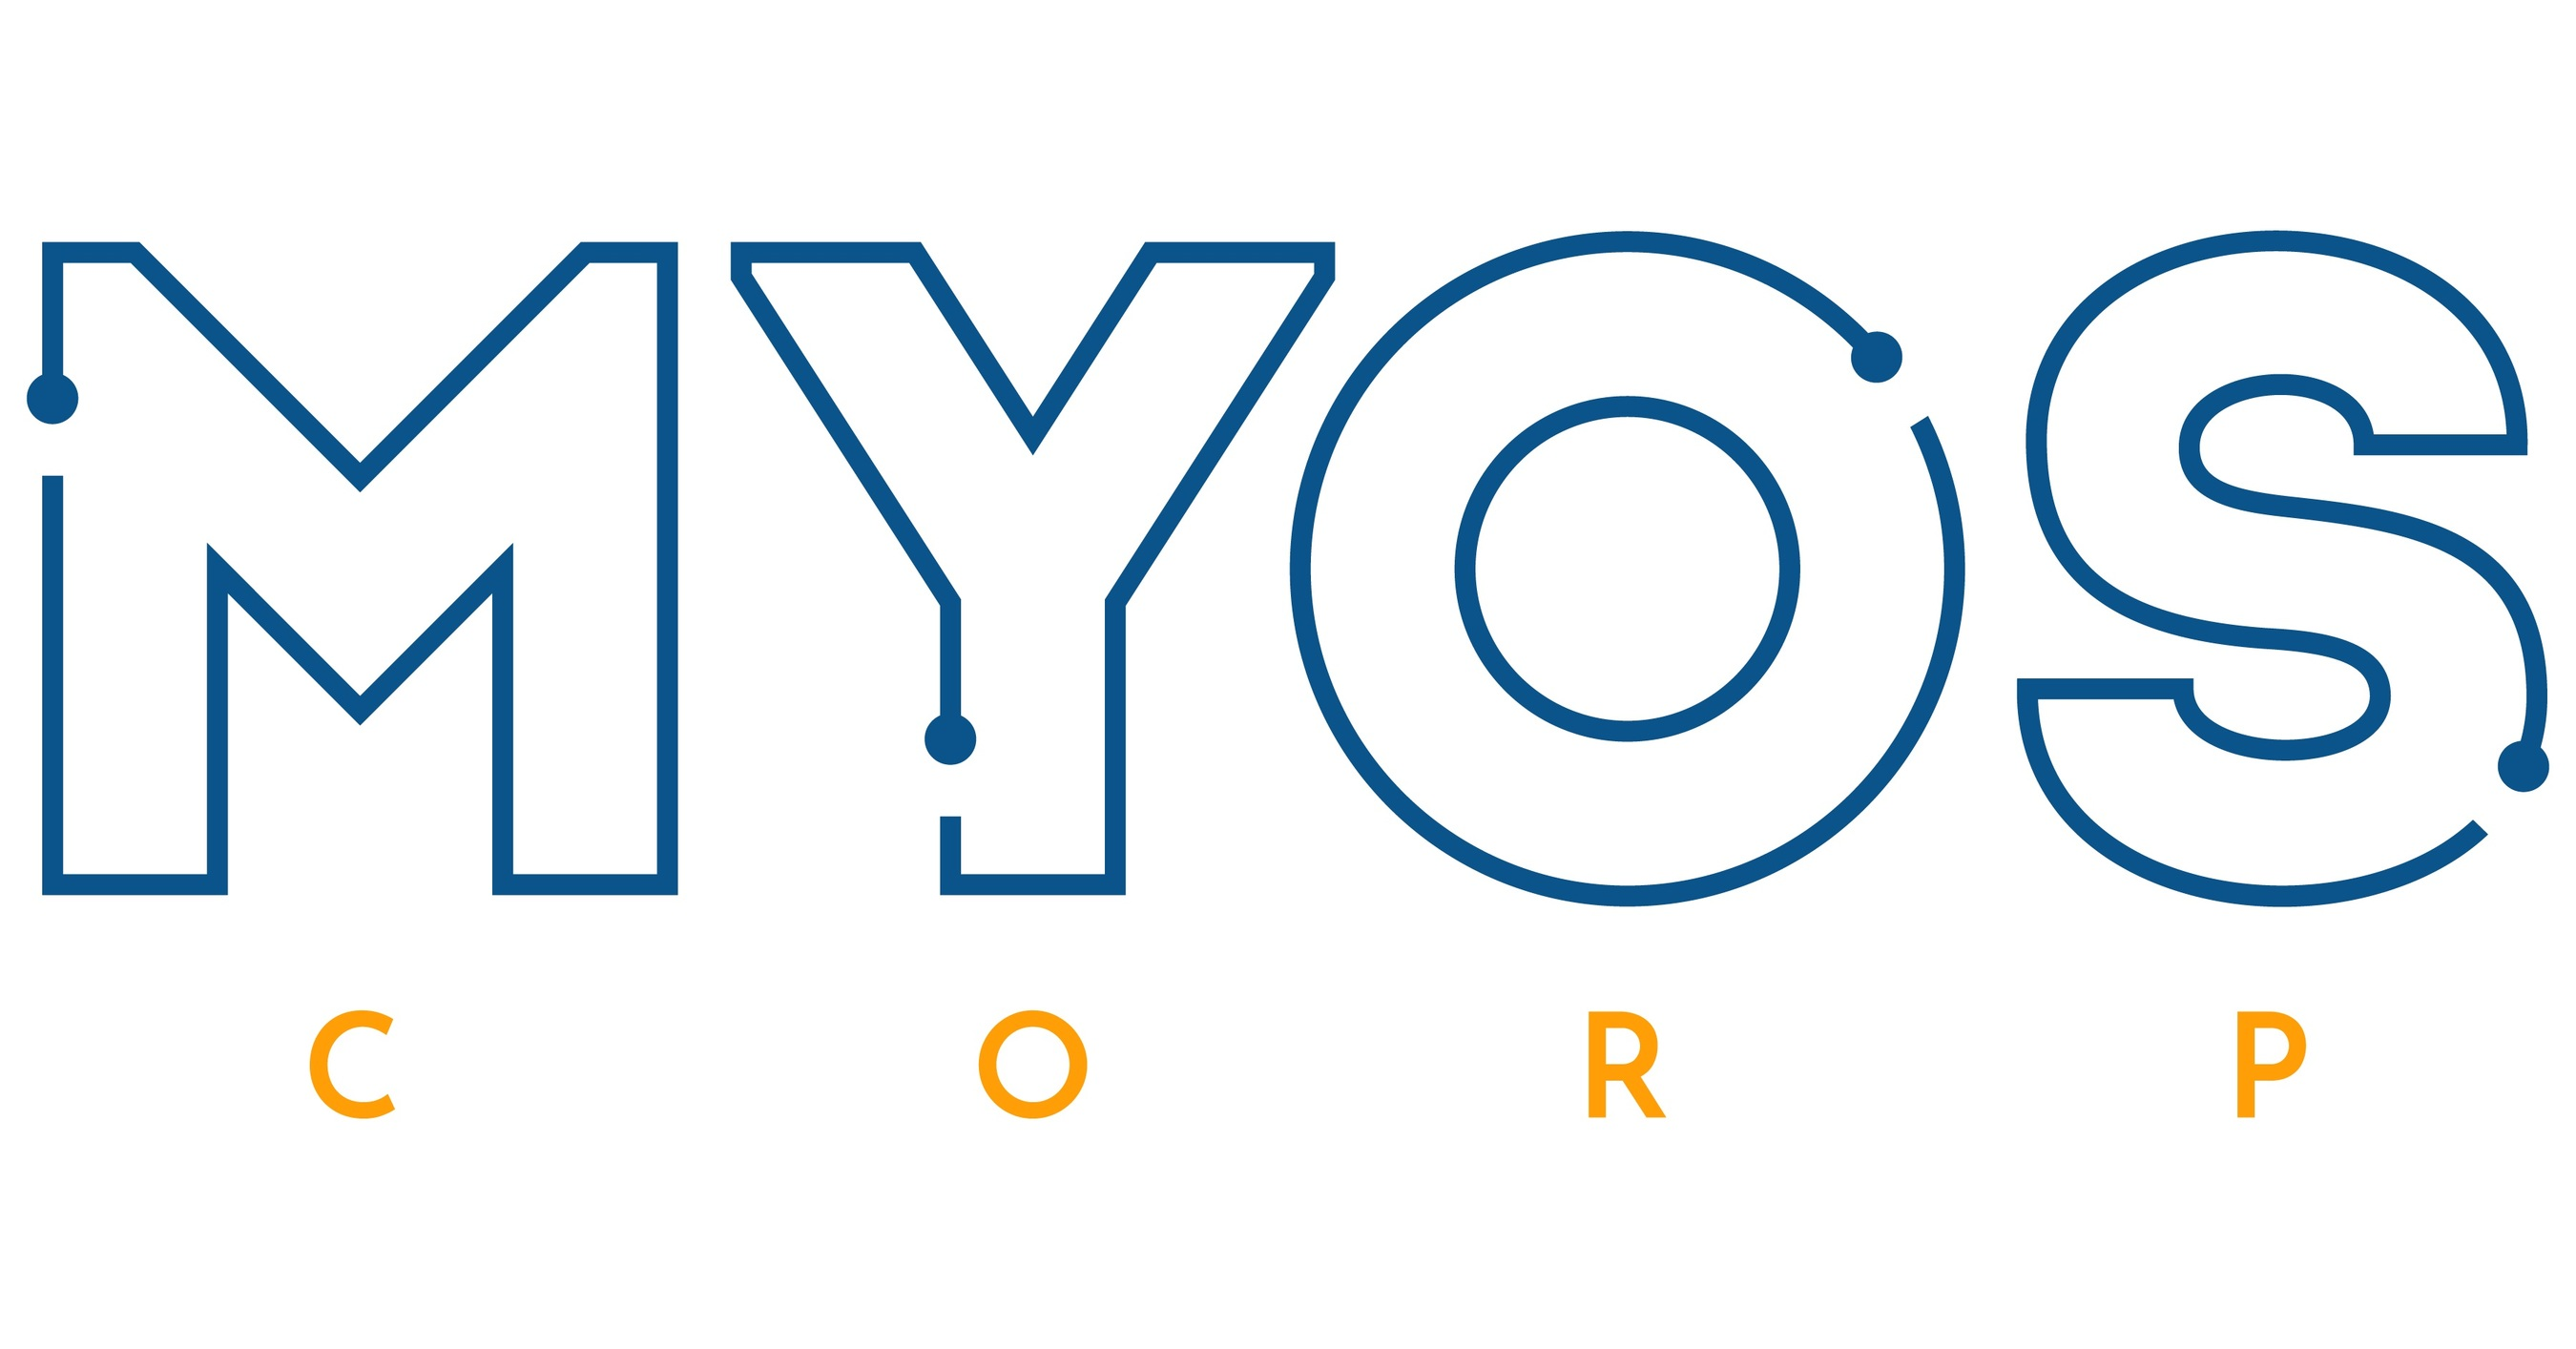 MYOS RENS' Fortetropin® Clinical Trial Results to be Presented by William J. Evans, Ph.D., at the International Conference on Frailty and Sarcopenia Research